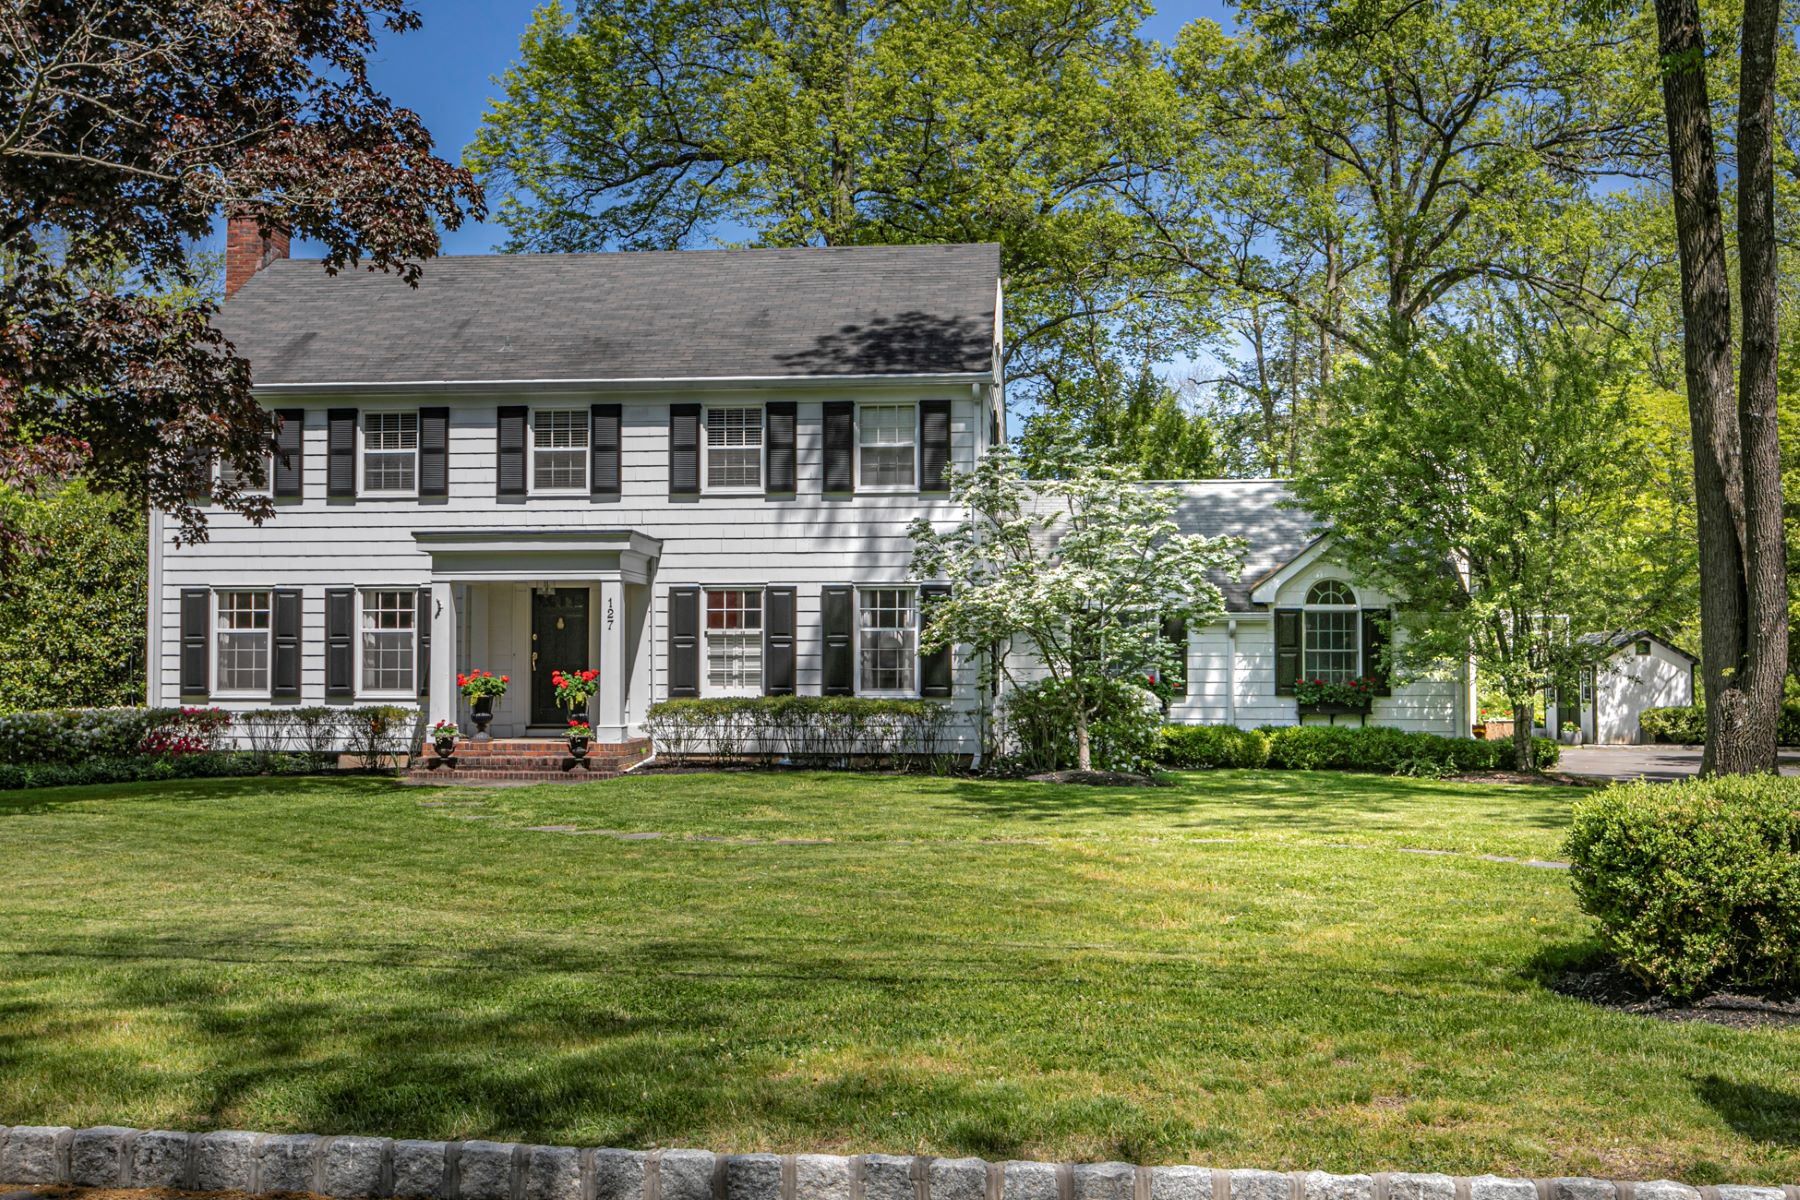 Property のために 売買 アット Classic Yet Modern Colonial Only 1.2 Miles to Town! 127 Westerly Road, Princeton, ニュージャージー 08540 アメリカ